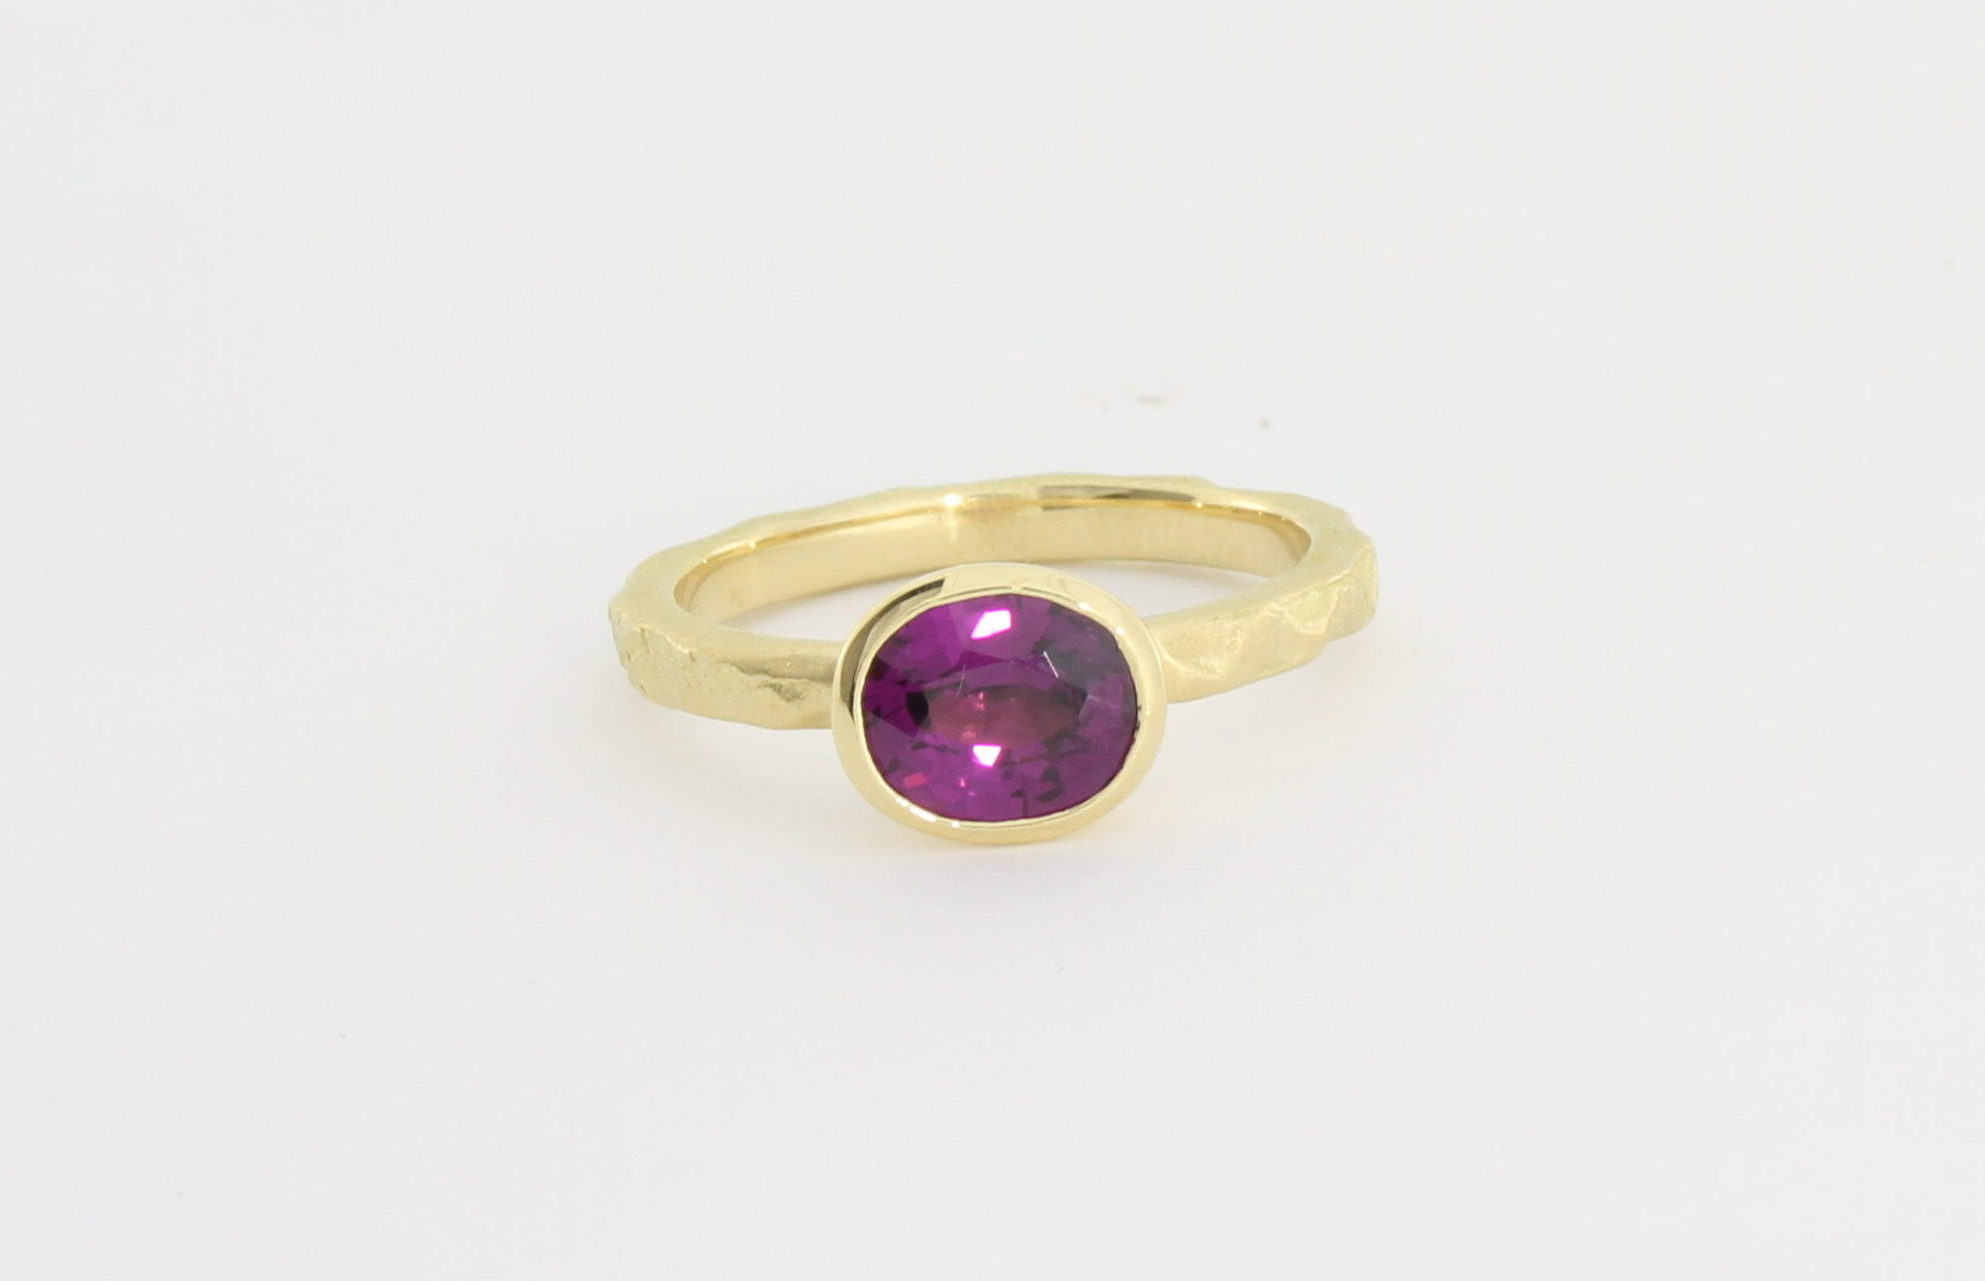 Payet purple garnet ring